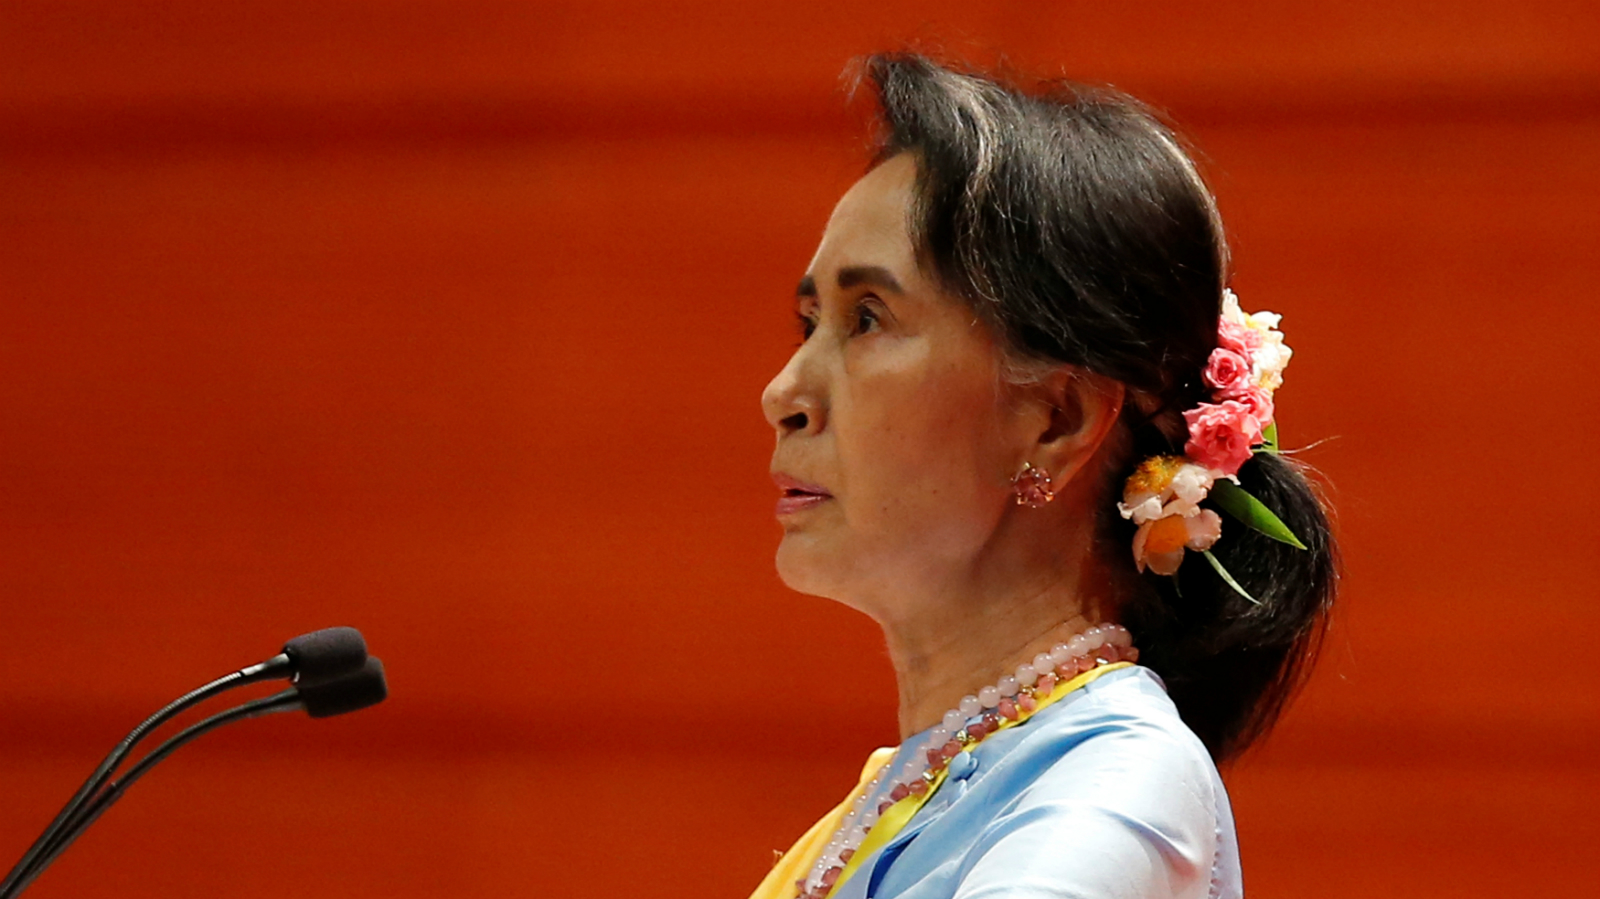 Myanmar State Counsellor Aung San Suu Kyi speaks at the opening ceremony of the 21st Century Panglong Conference in Naypyitaw, Myanmar May 24, 2017.